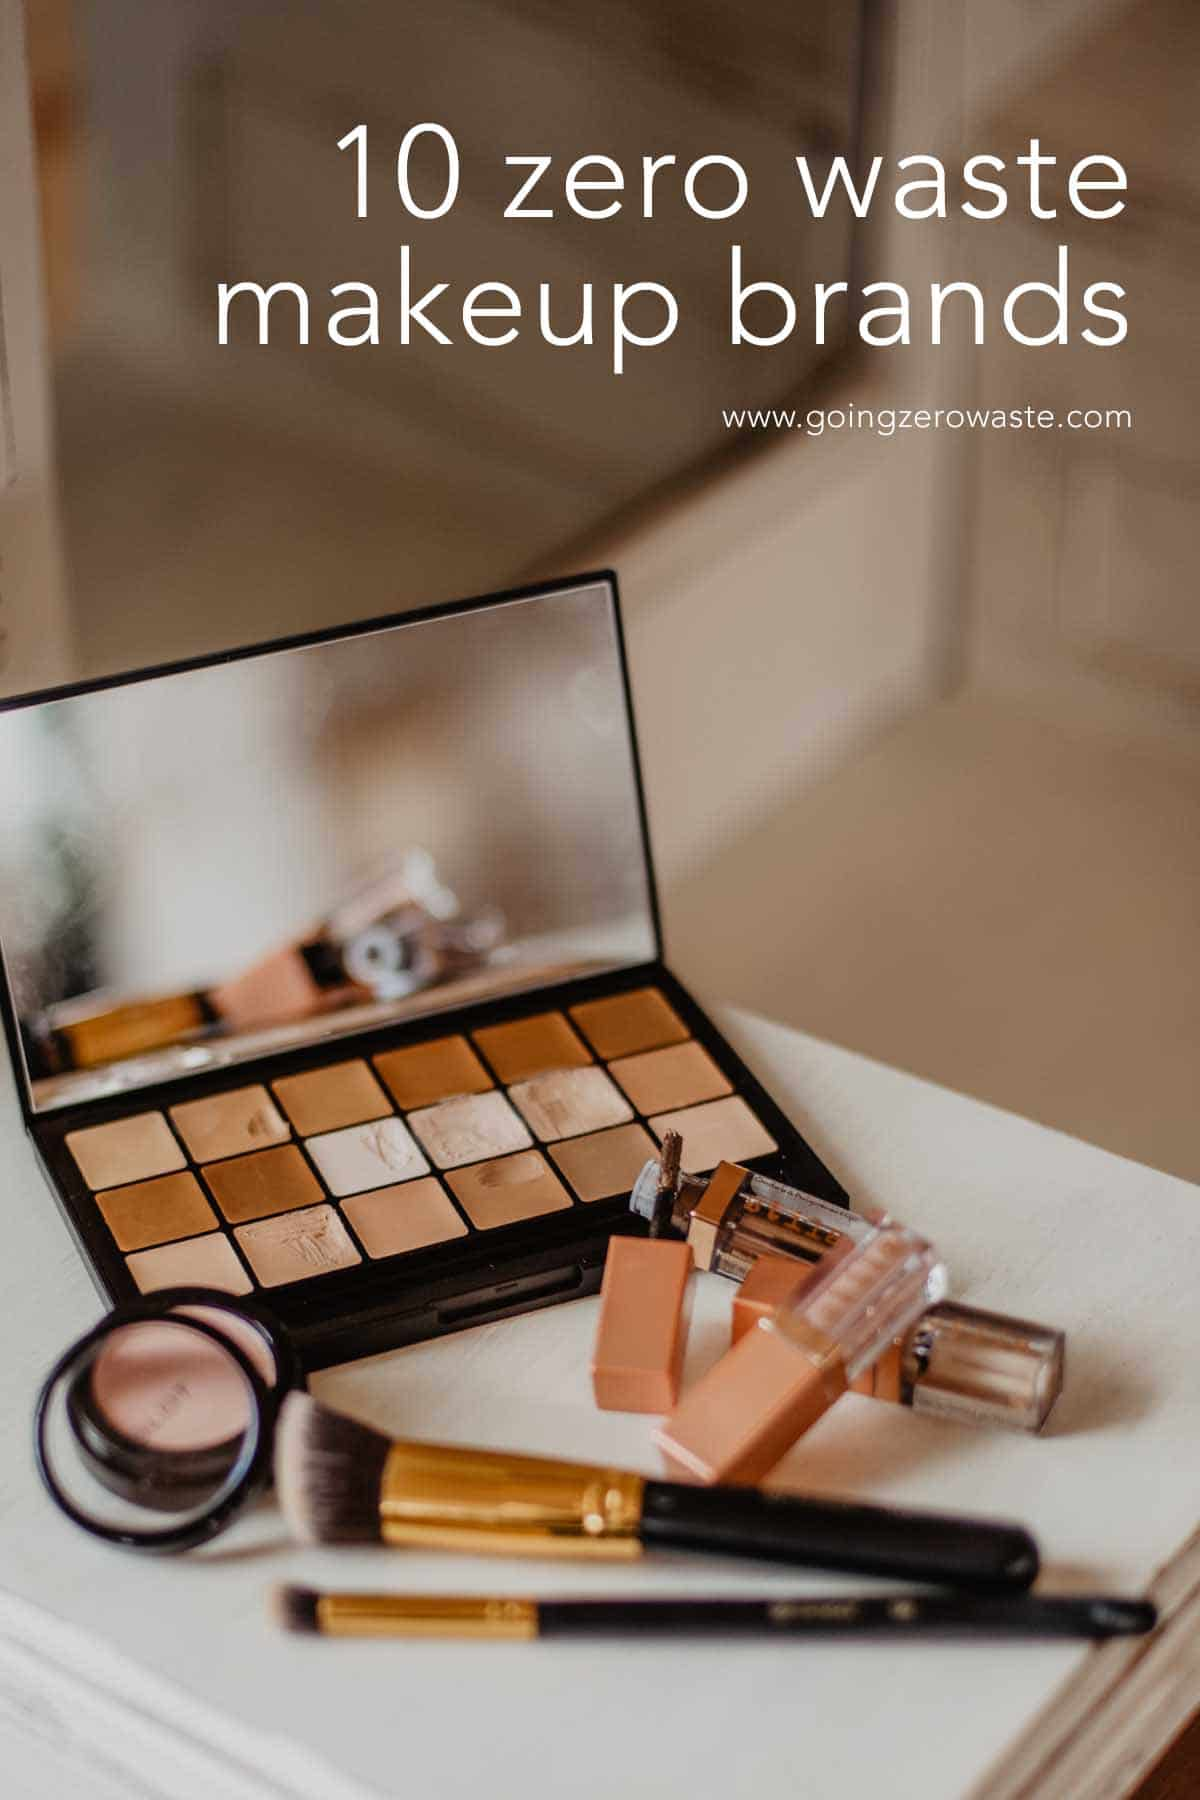 10 Zero Waste Makeup Brands